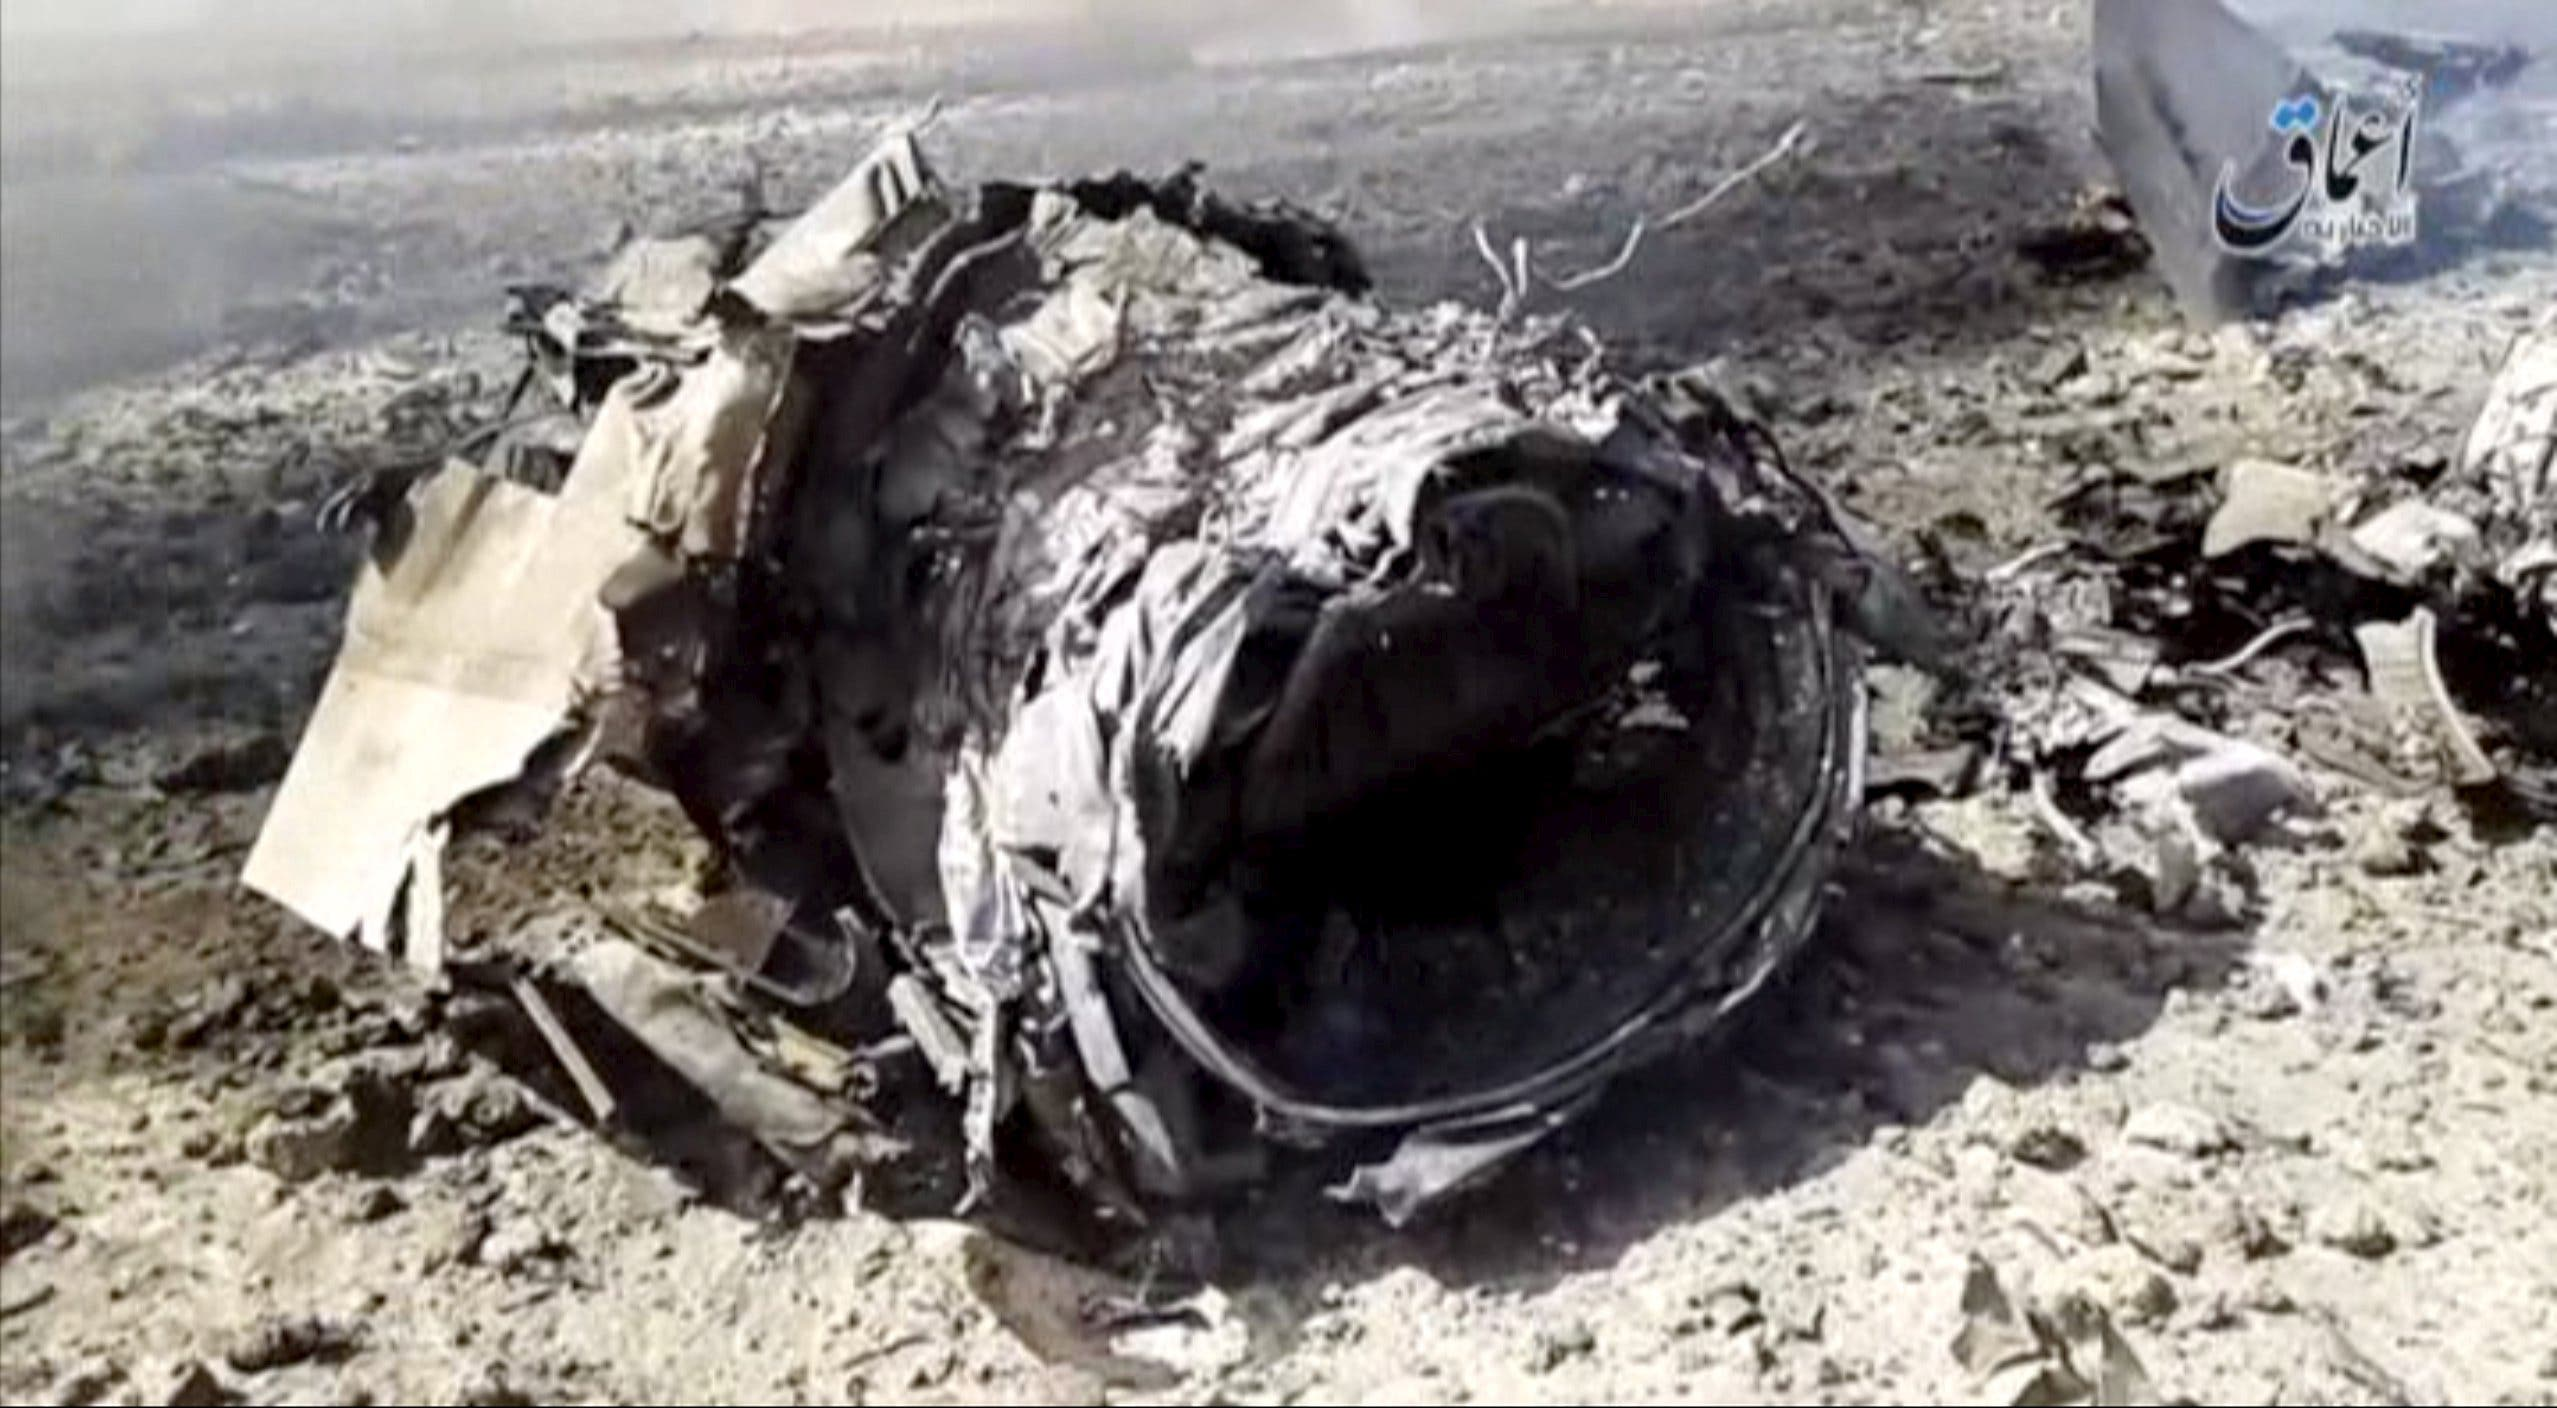 A view of the wreckage of a plane that crashed southeast of Damascus, Syria in this still image taken from video said to be shot April 22, 2016. (Reuters)